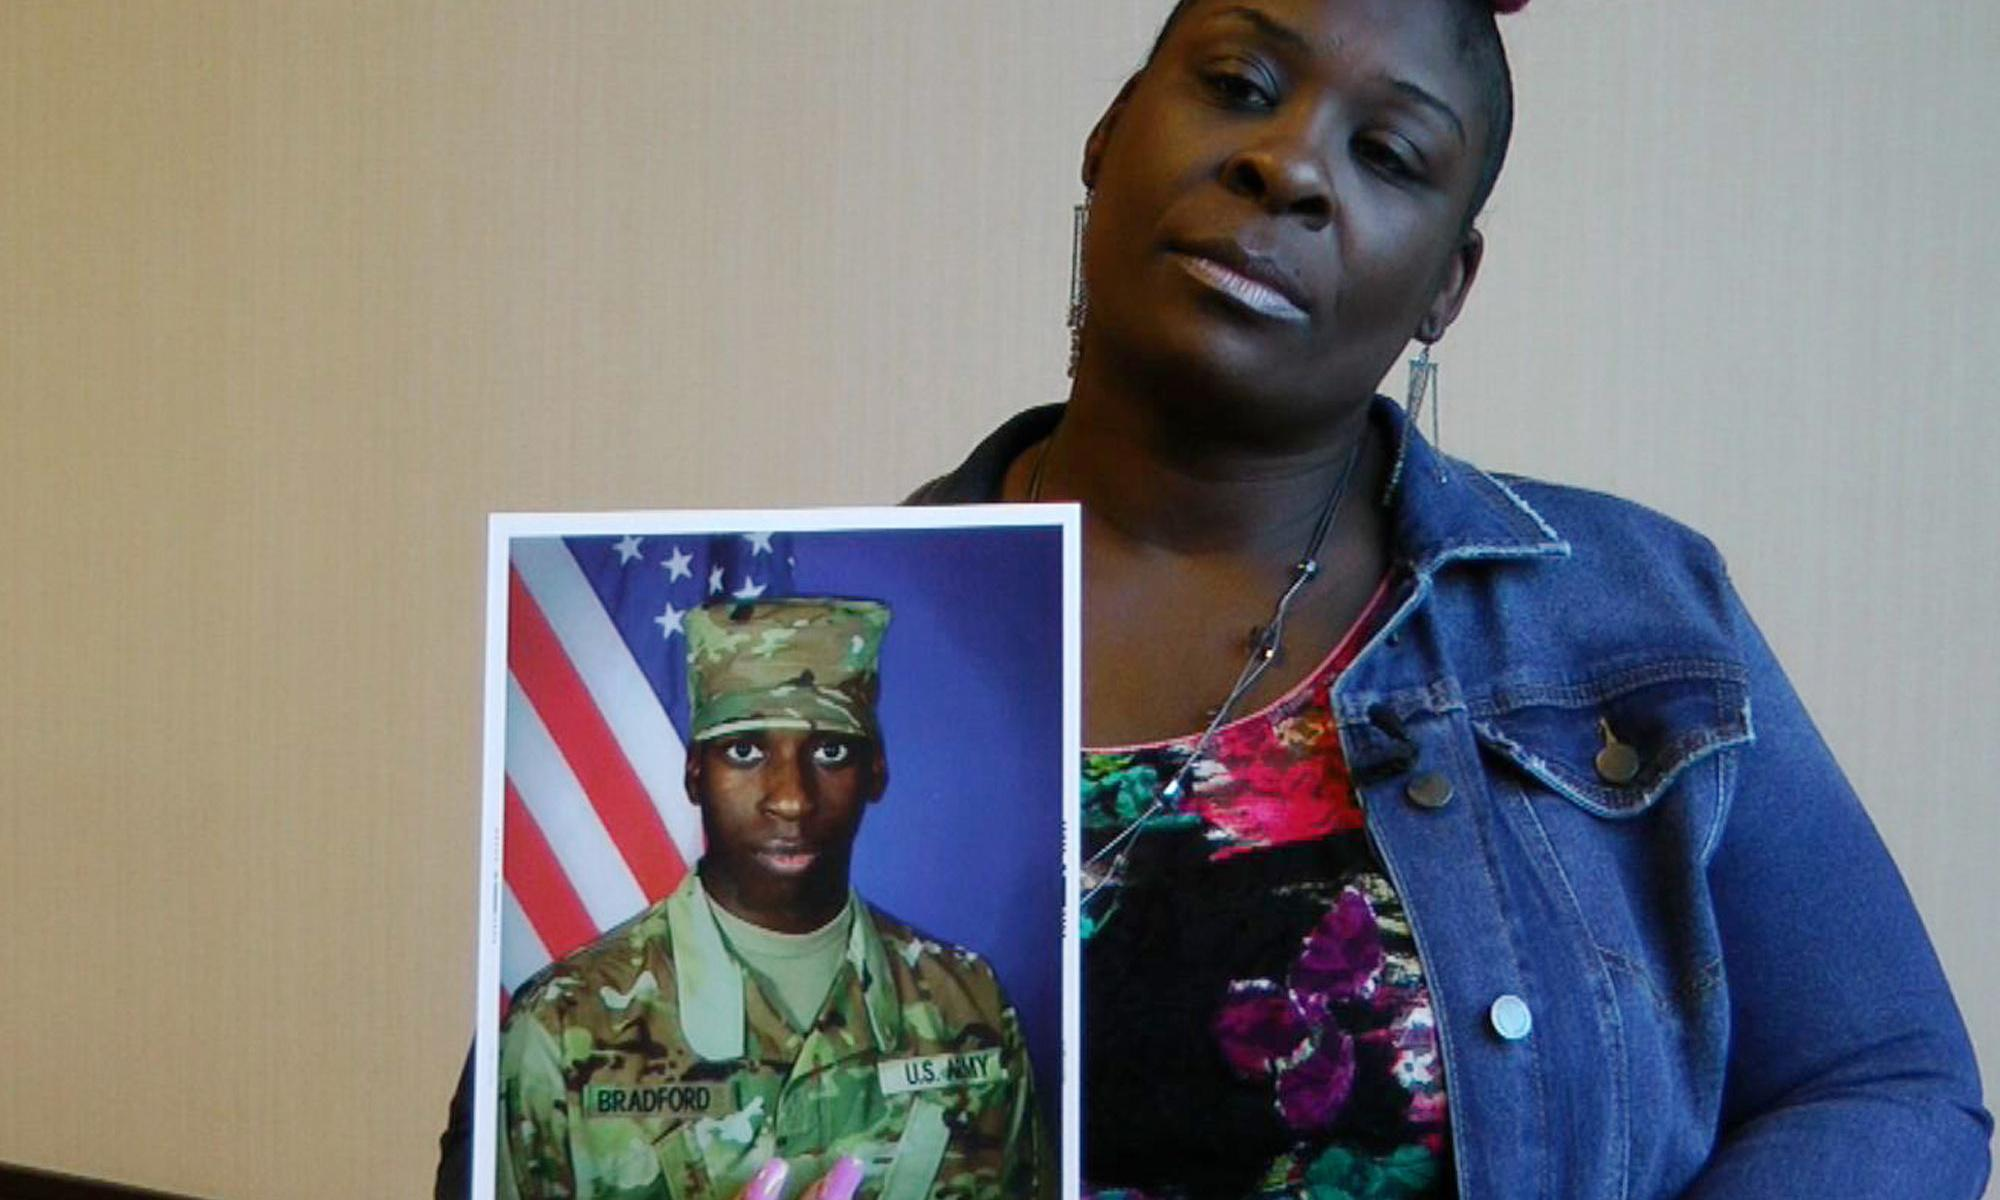 EJ Bradford was shot three times from behind by officer, autopsy reveals